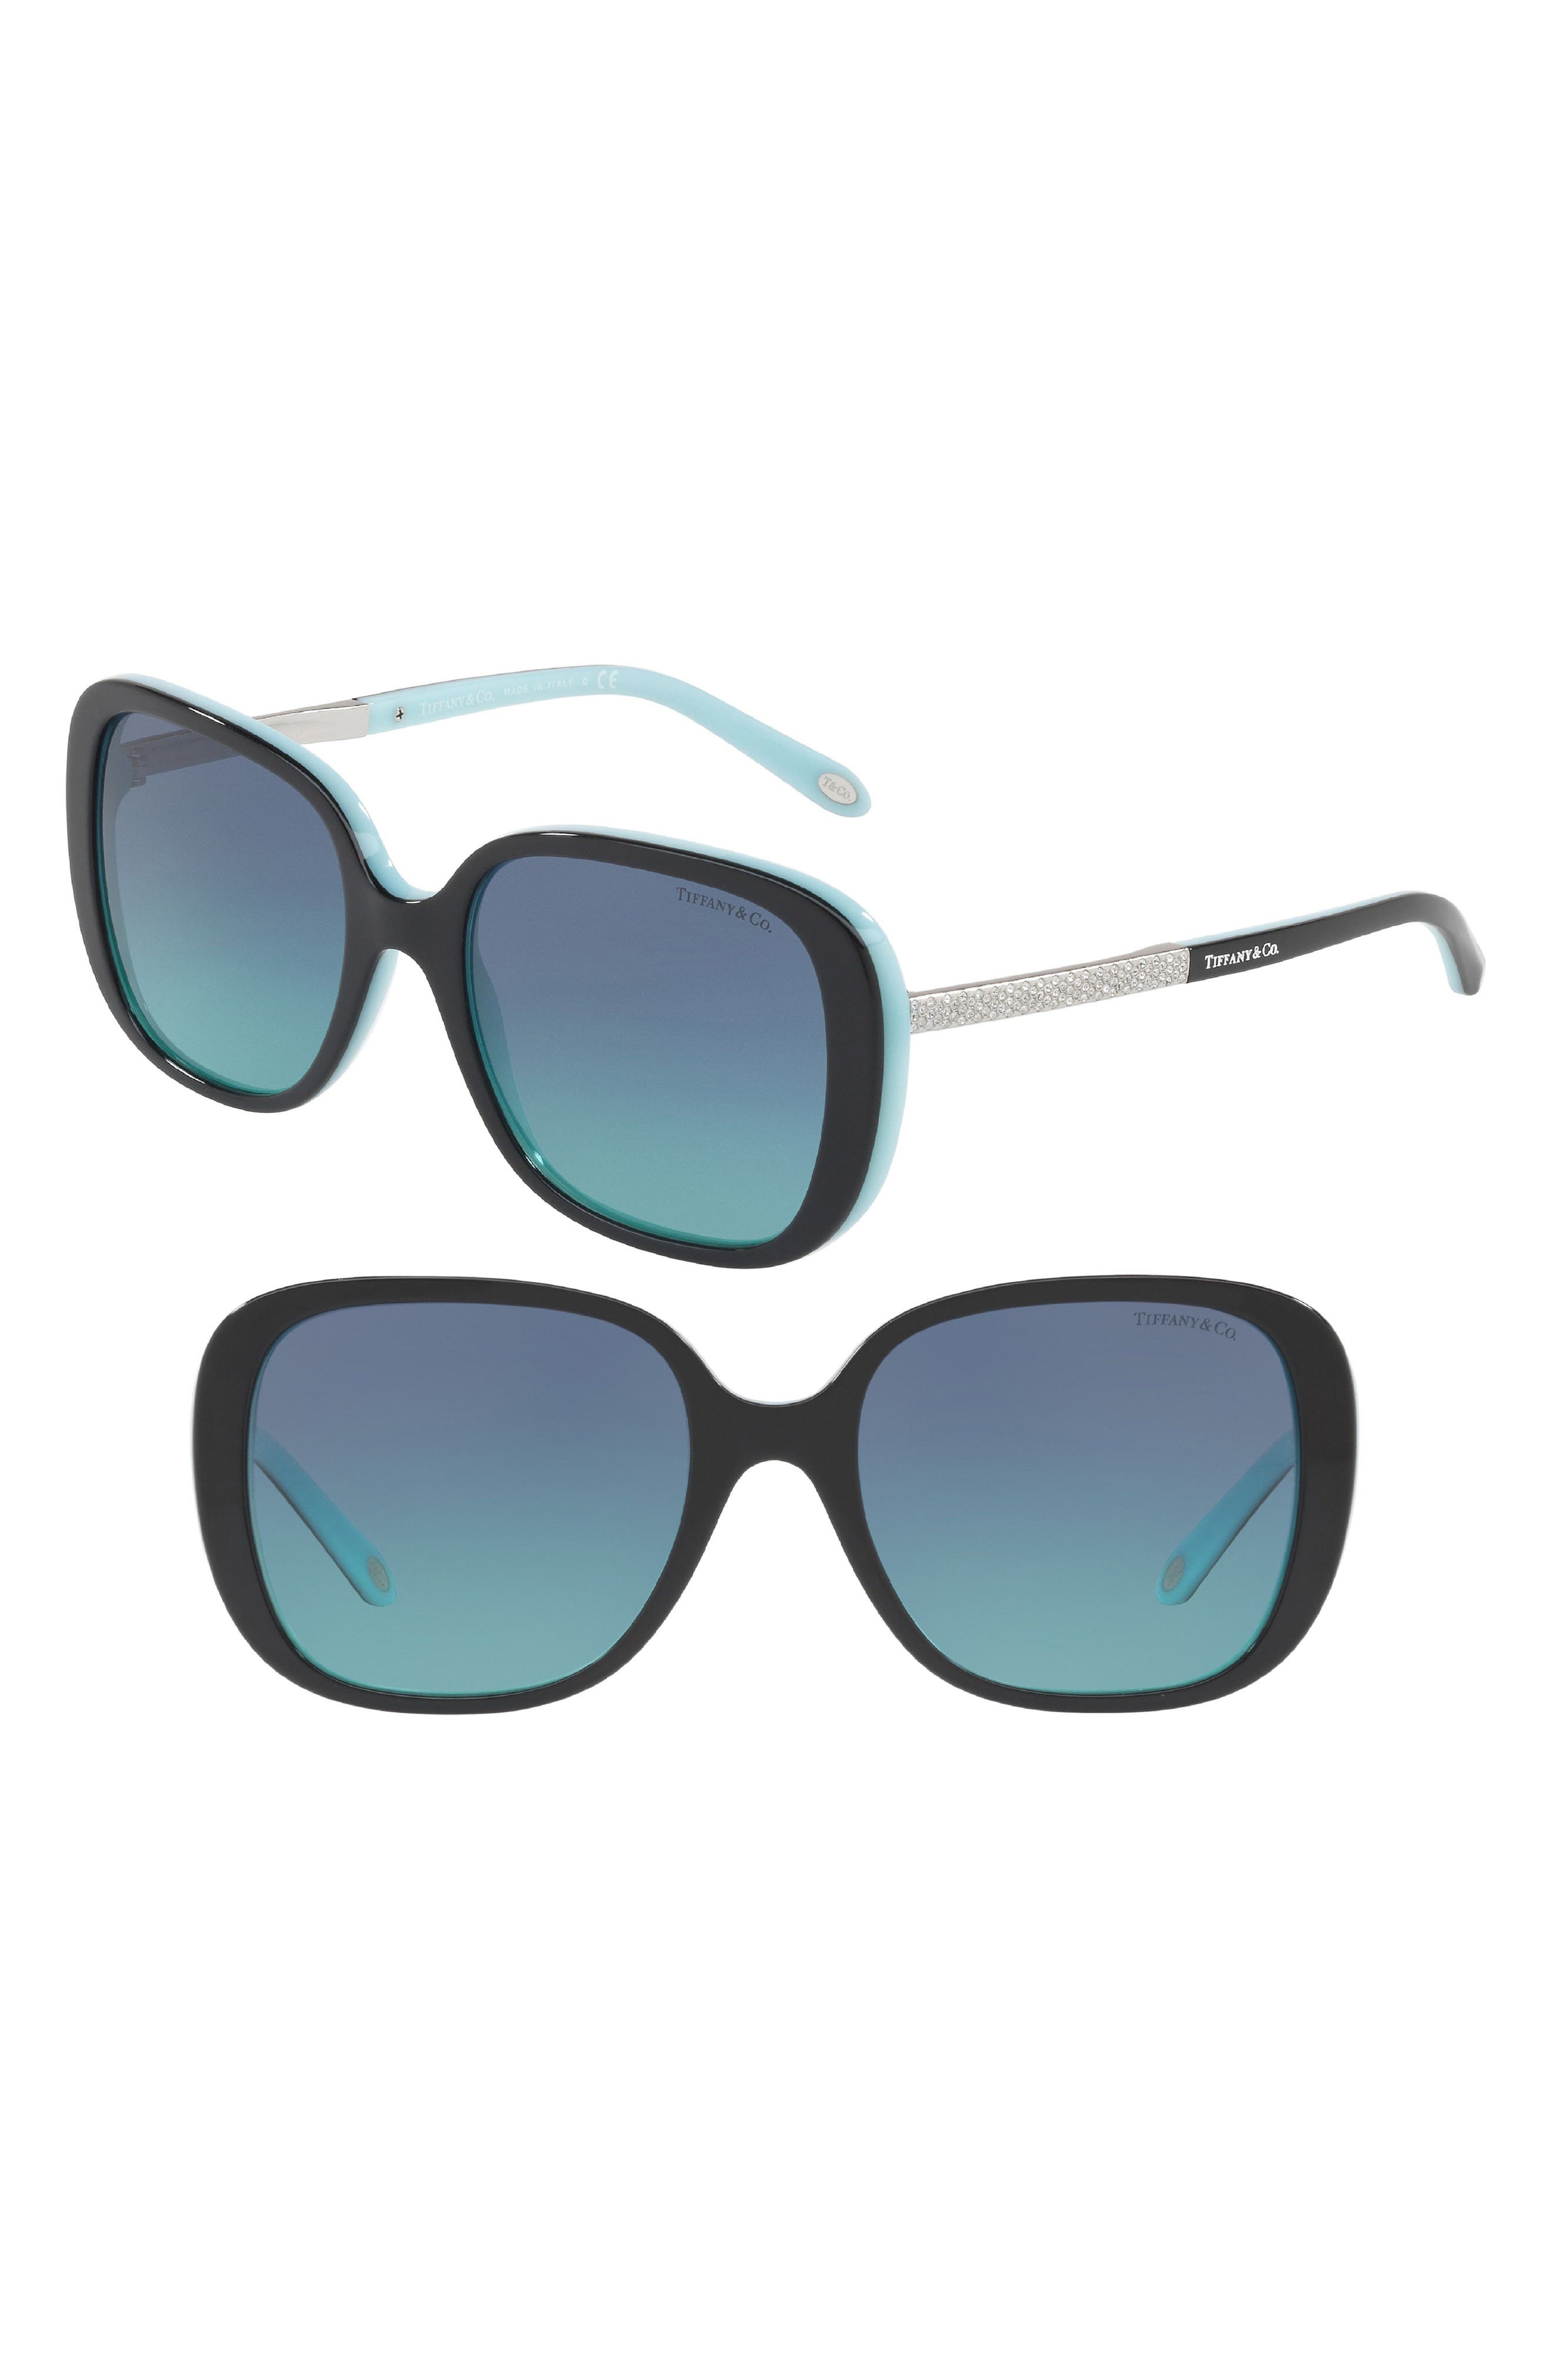 54mm Gradient Sunglasses,                         Main,                         color, BLACK/ BLUE